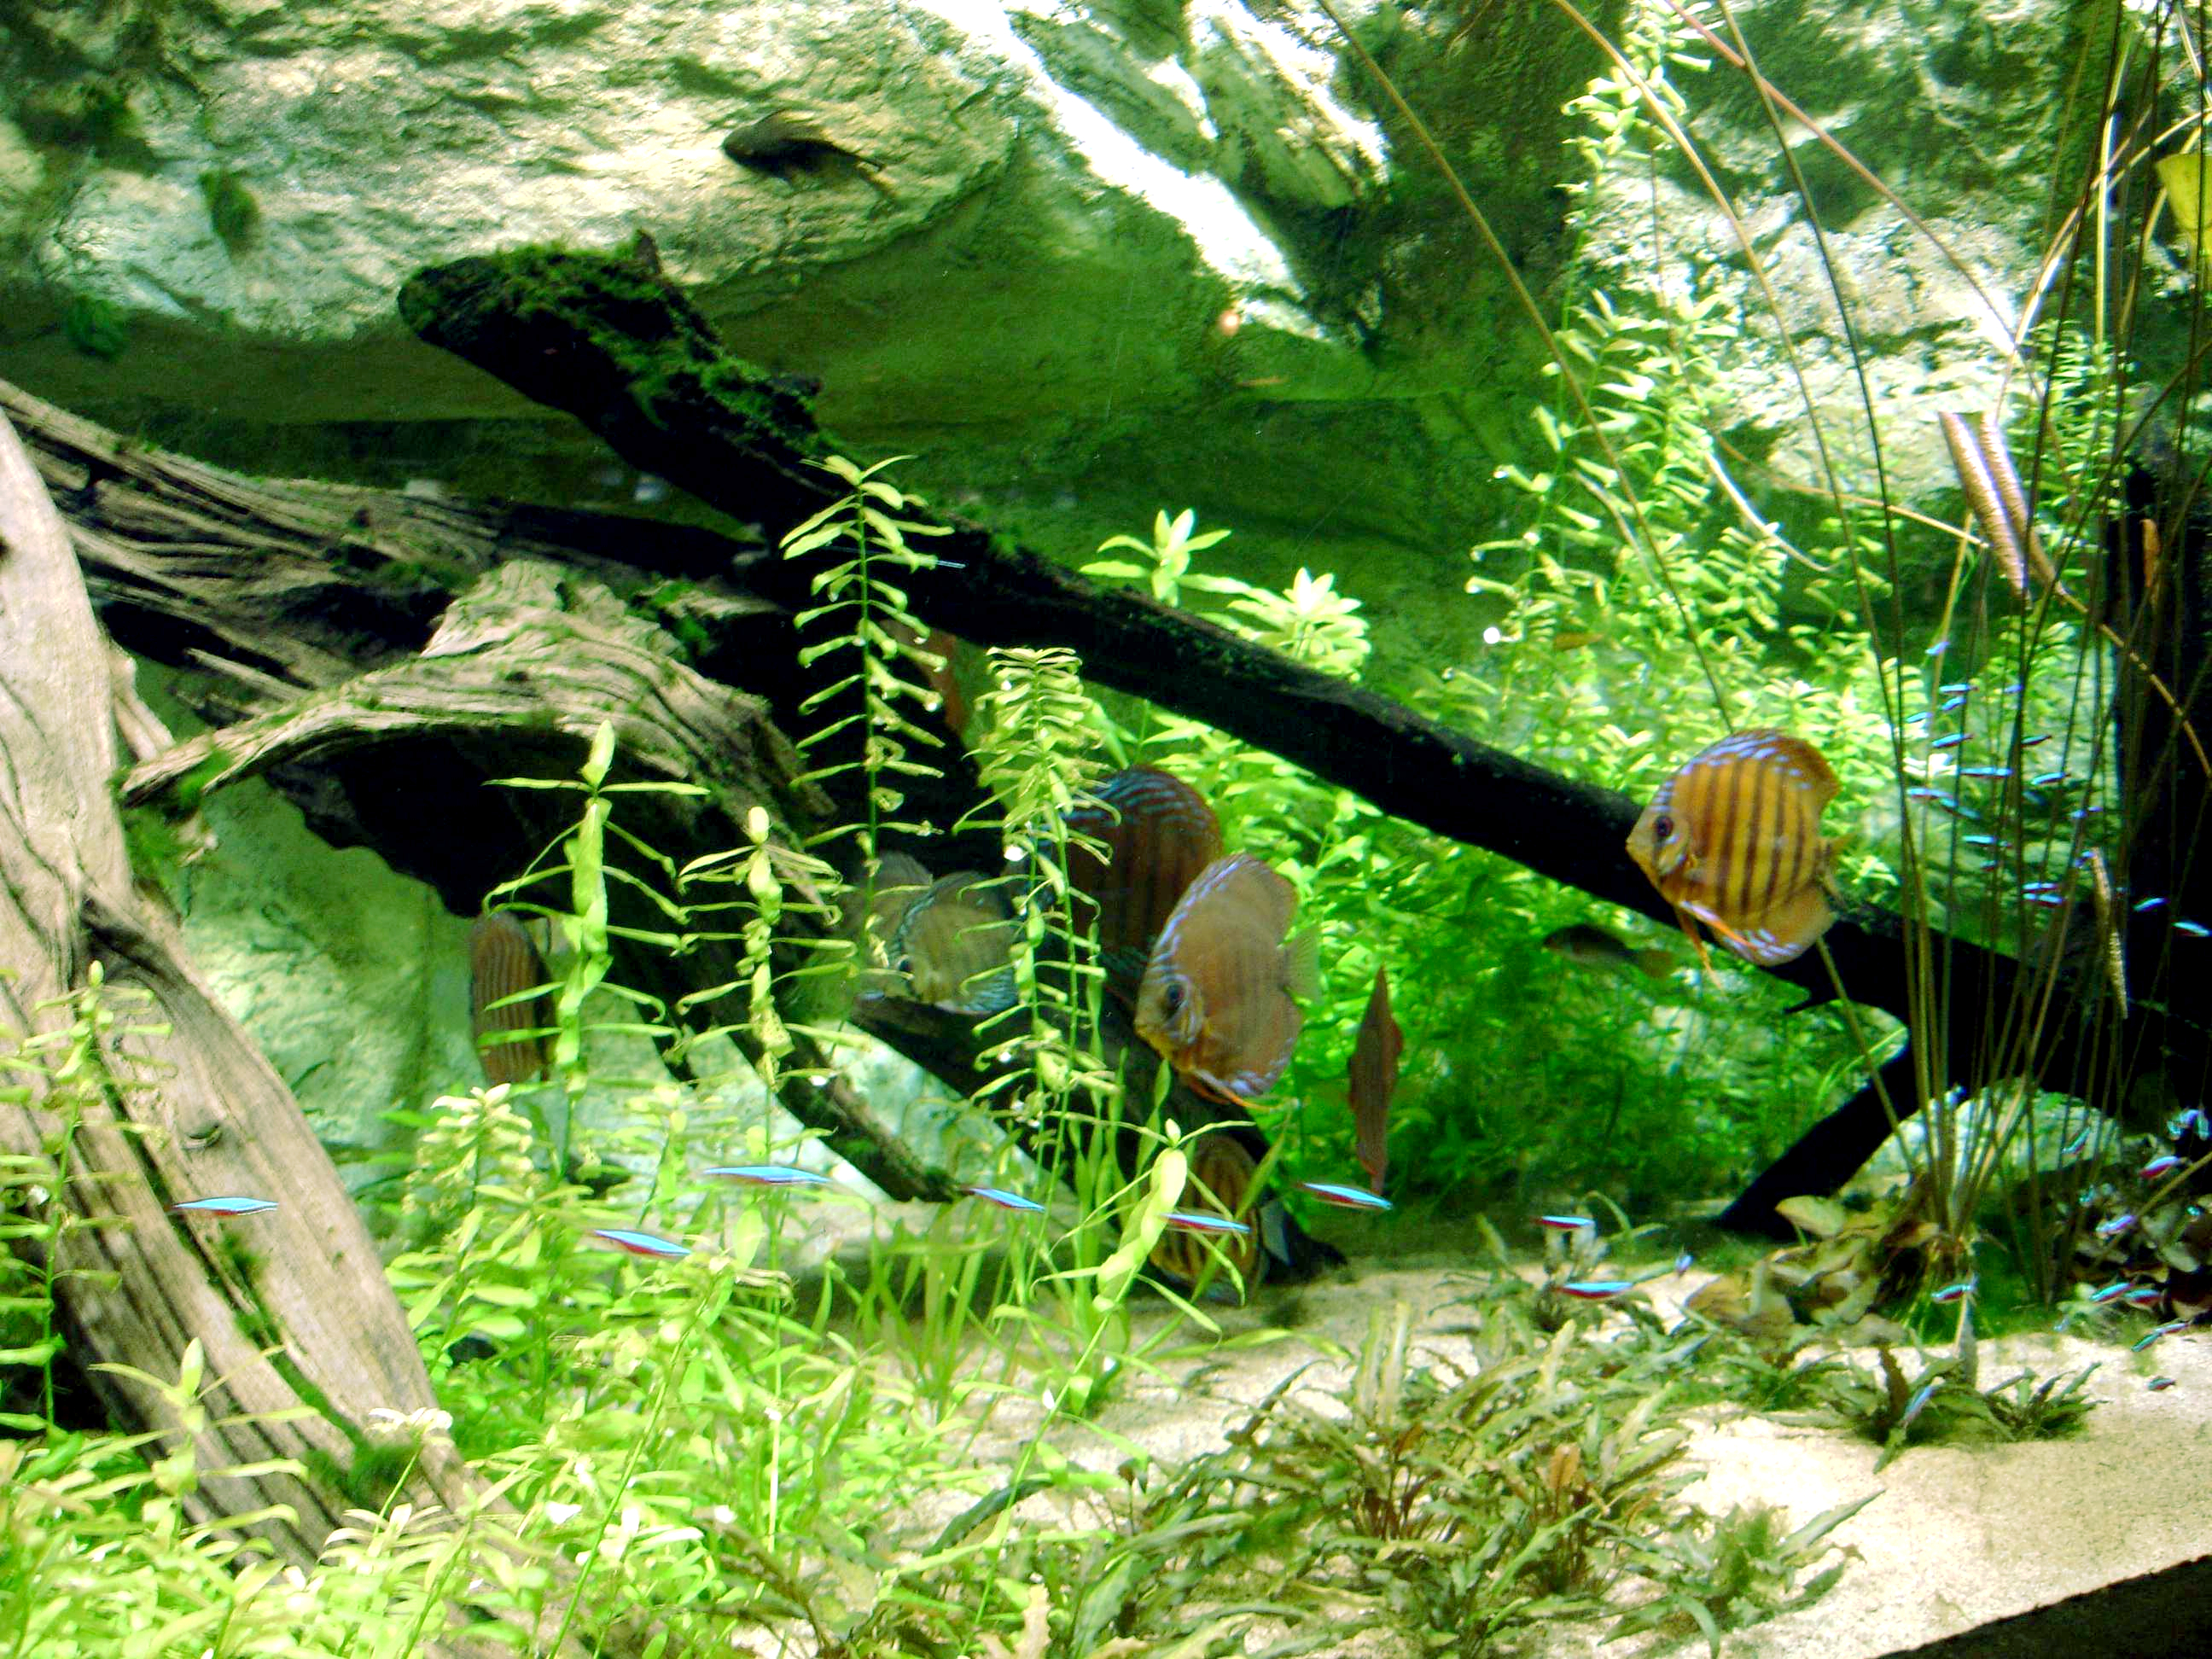 Decoration Aquarium On Les Mais Sur Le Terreau Ou Gravier